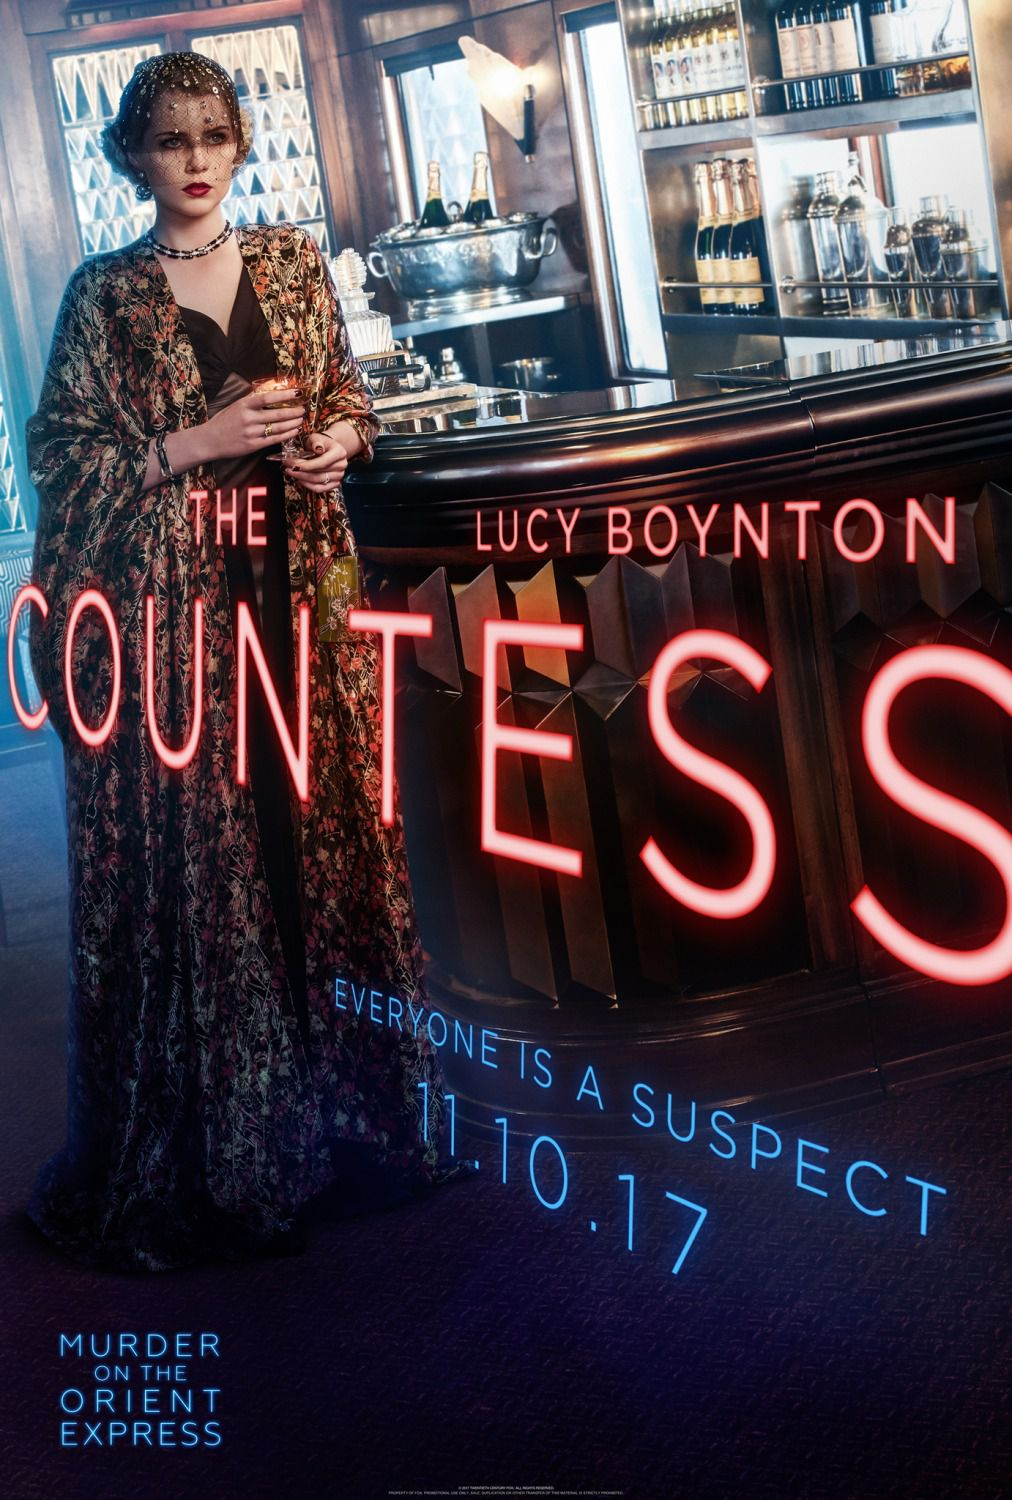 Lucy Boynton - Countess